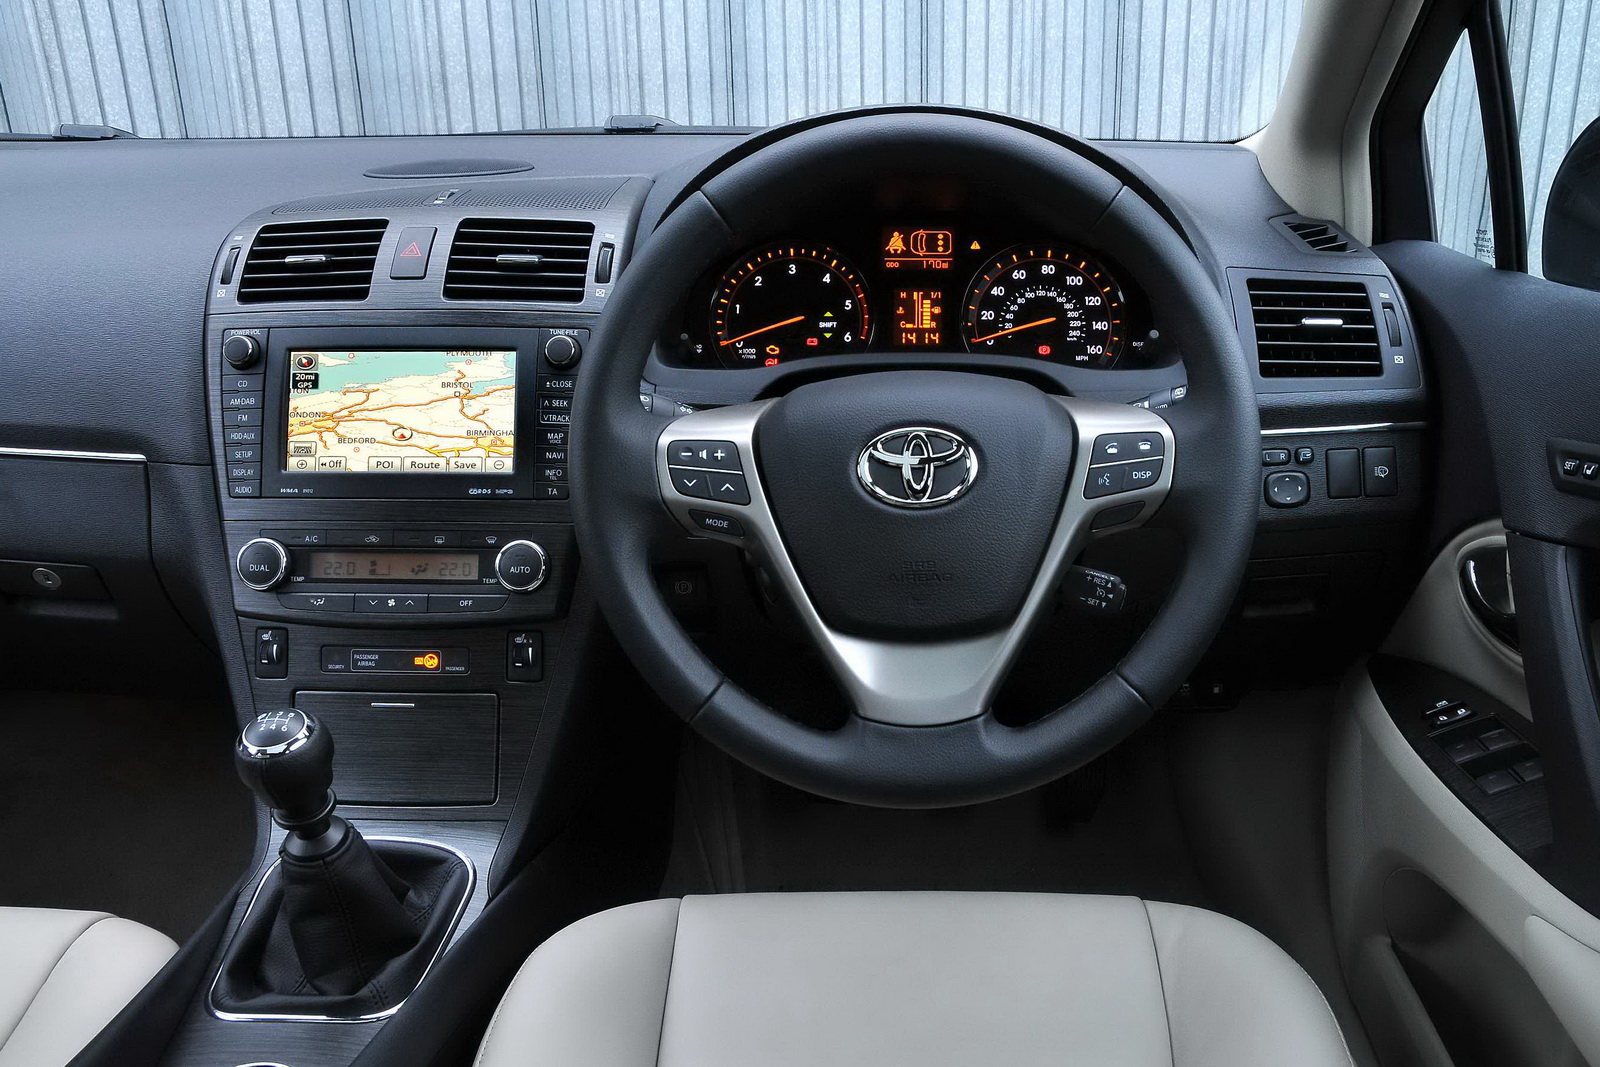 new gallery cars toyota avensis interior